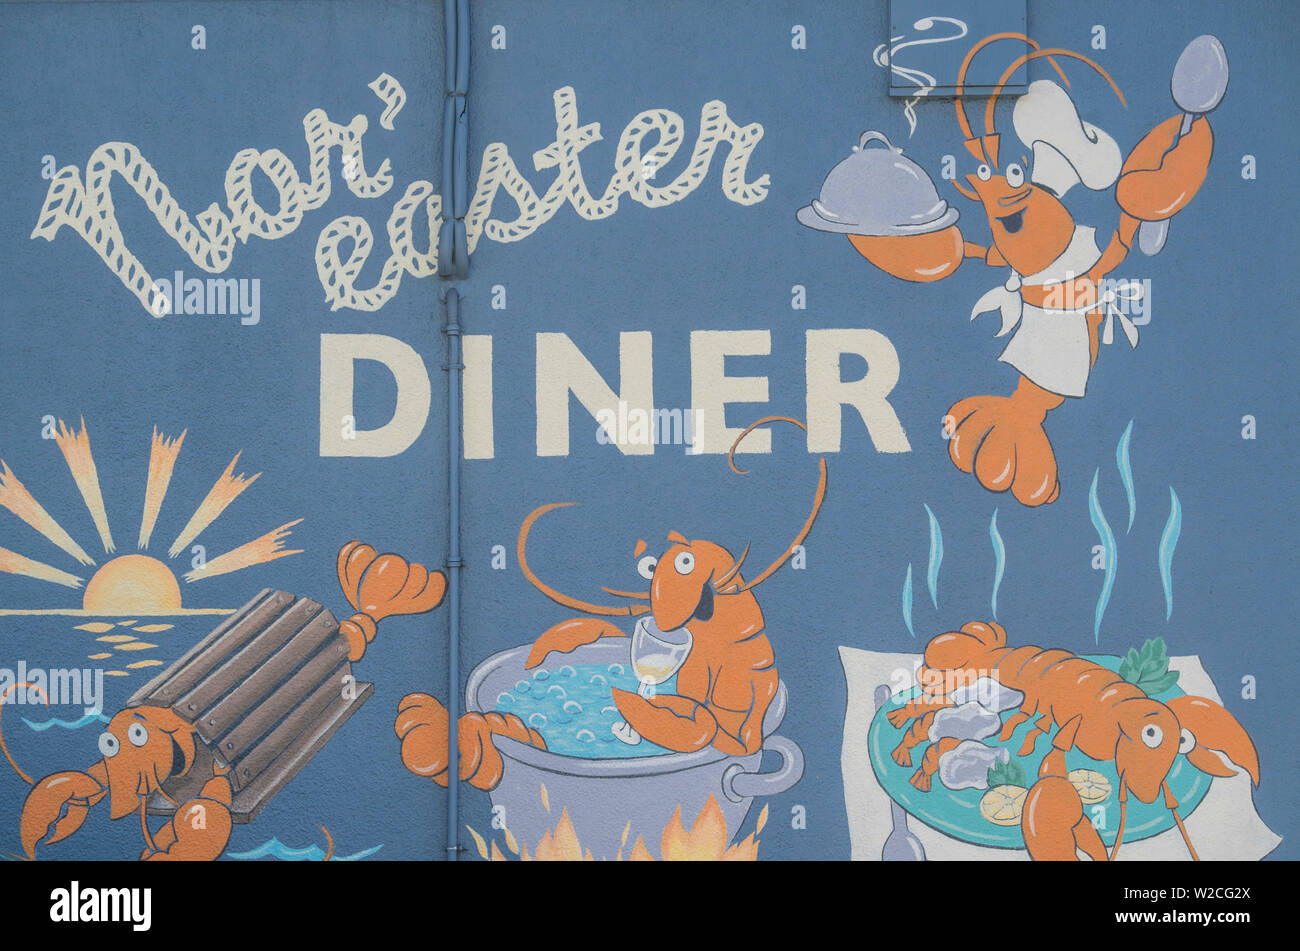 USA, Connecticut, Stonington, sign for the Nor'easter Diner - Stock Image